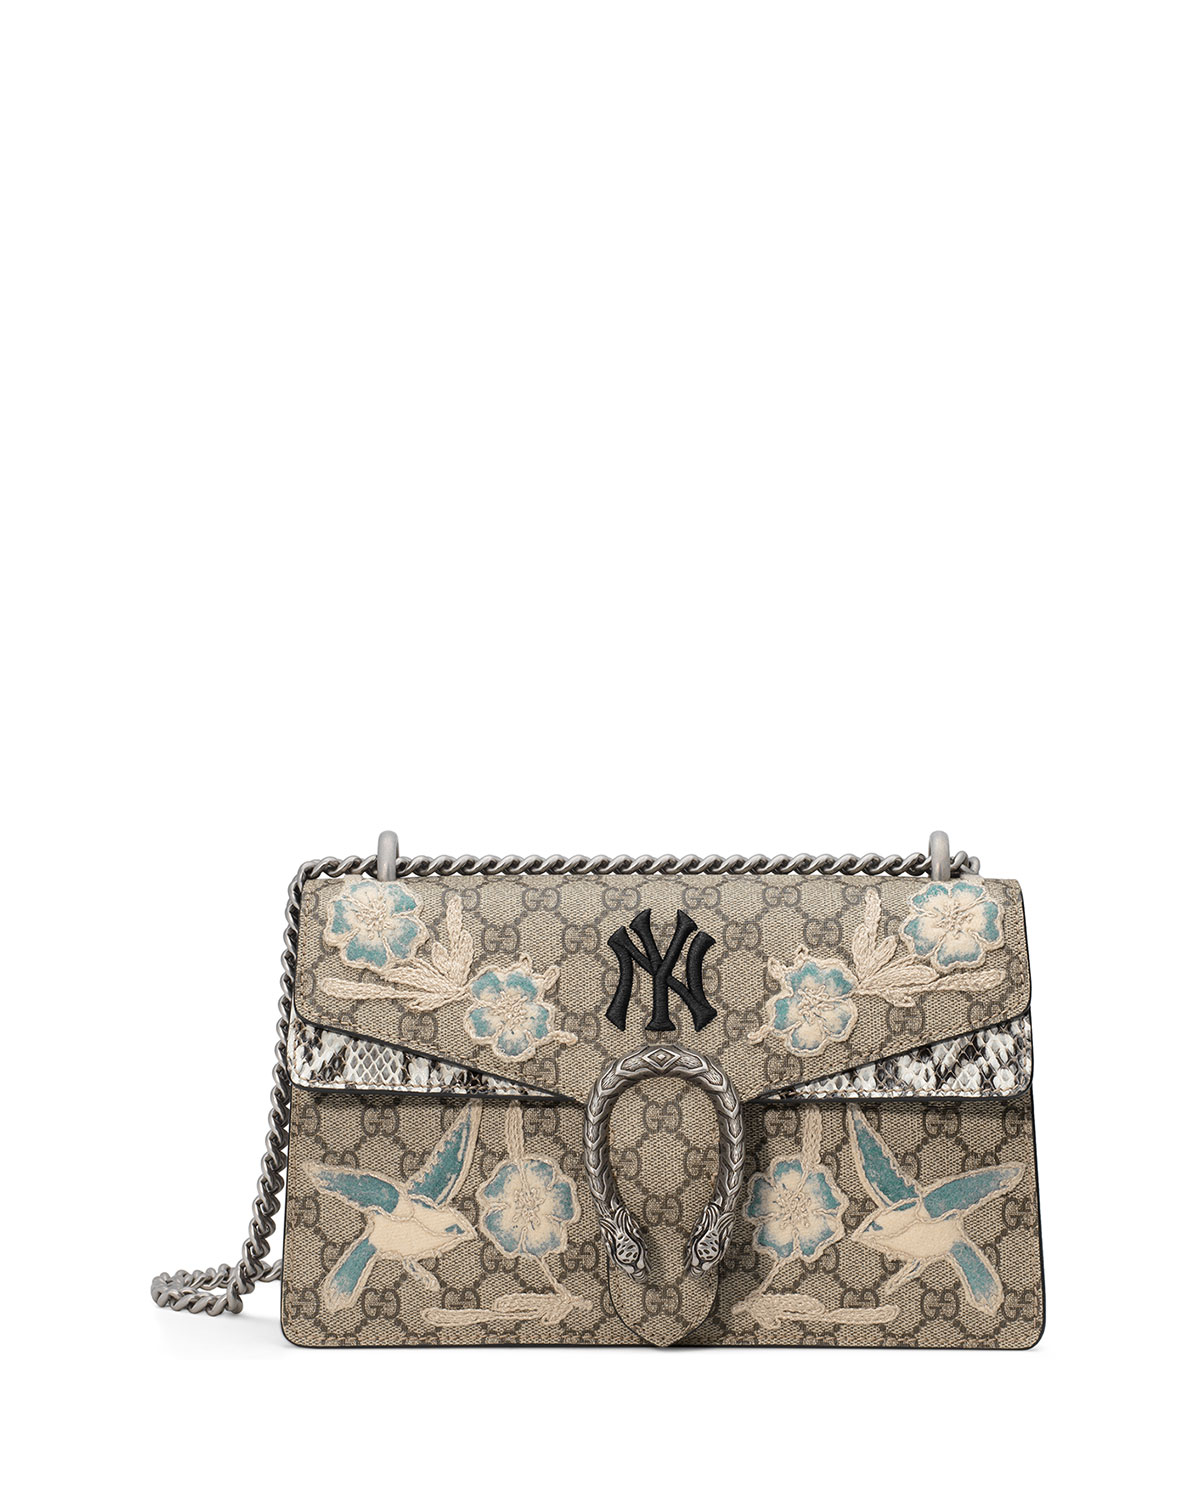 gucci dionysus medium gg new york yankees shoulder bag. Black Bedroom Furniture Sets. Home Design Ideas